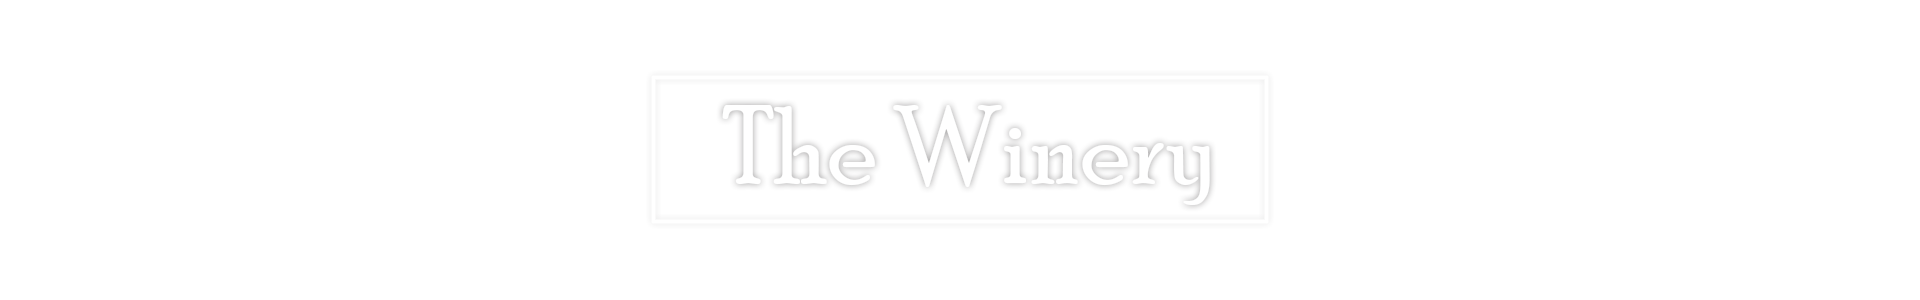 HEADER TITLE BARRELthewinery